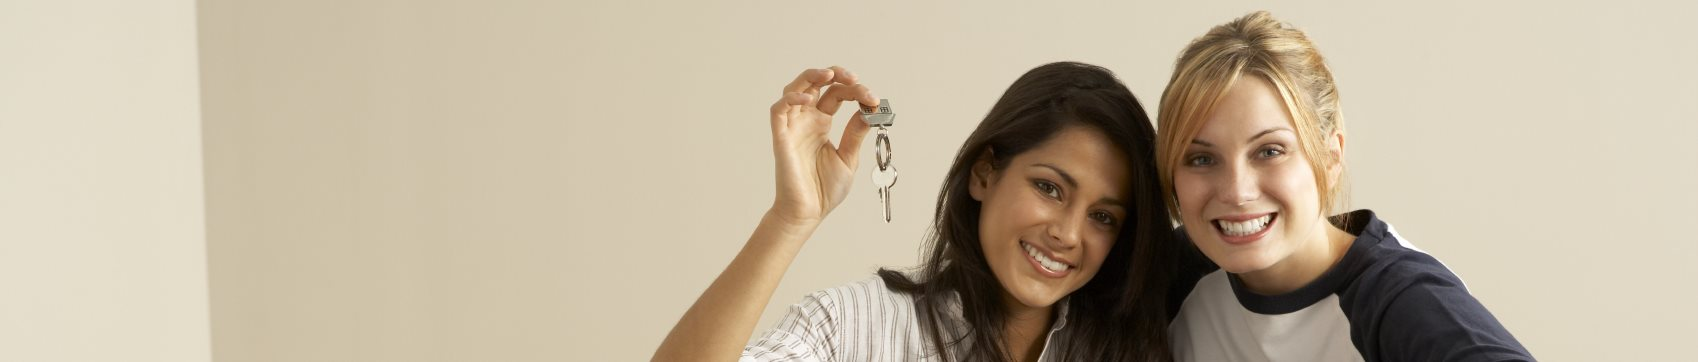 Women holding keys-Rio Vista Apartments, Los Angeles, CA